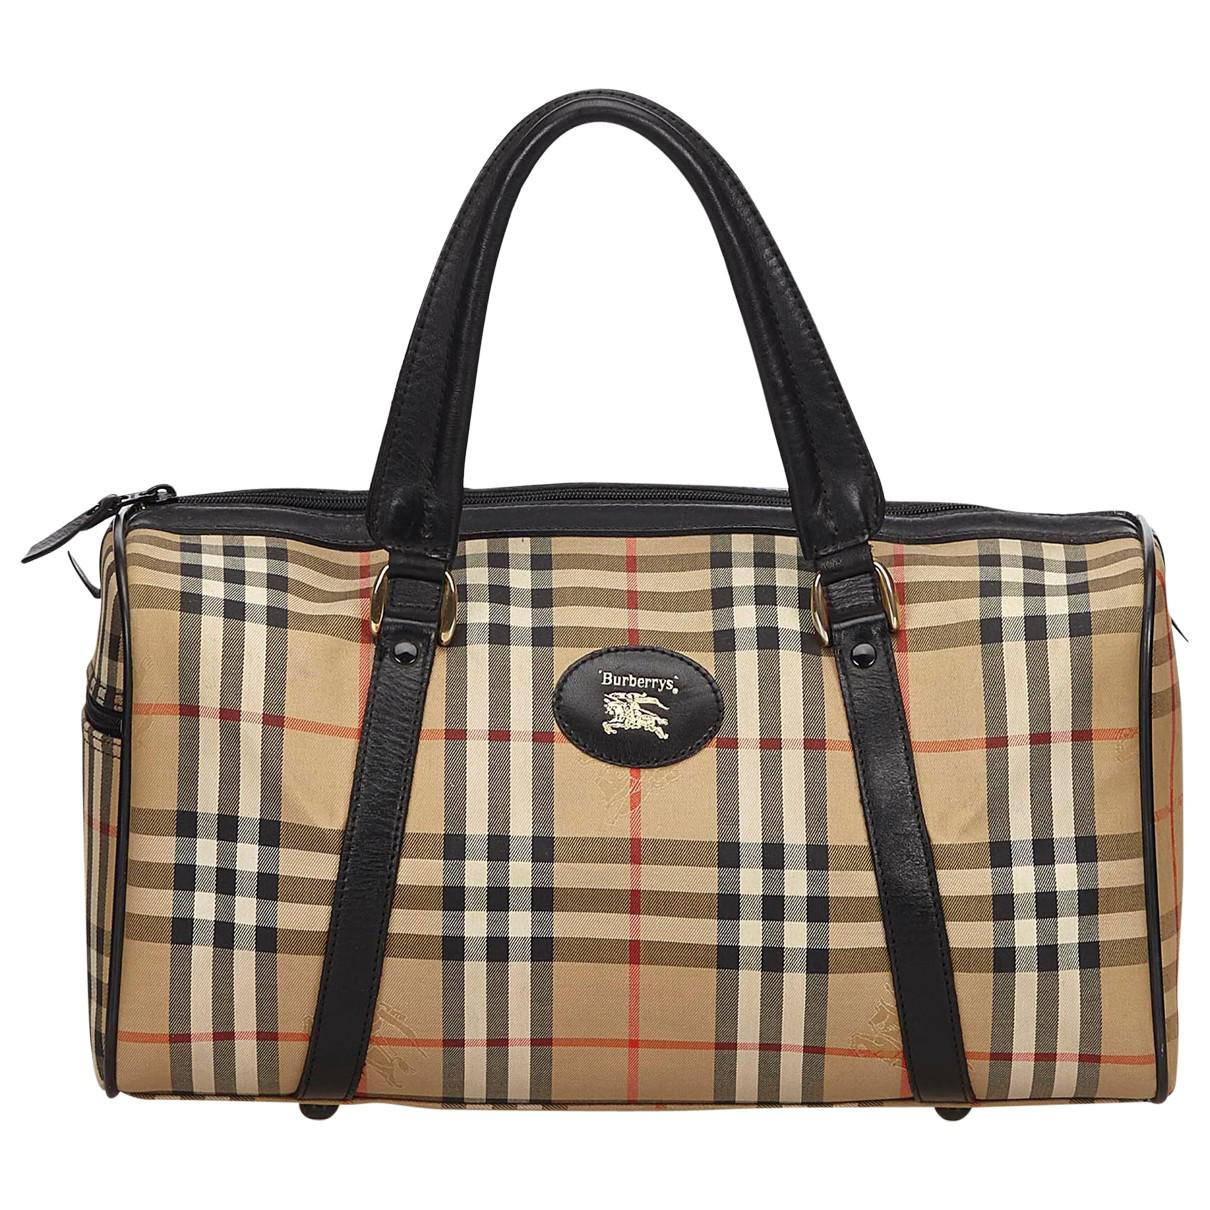 Lyst - Burberry Pre-owned Cloth Travel Bag in Brown 95cd44ee3a684